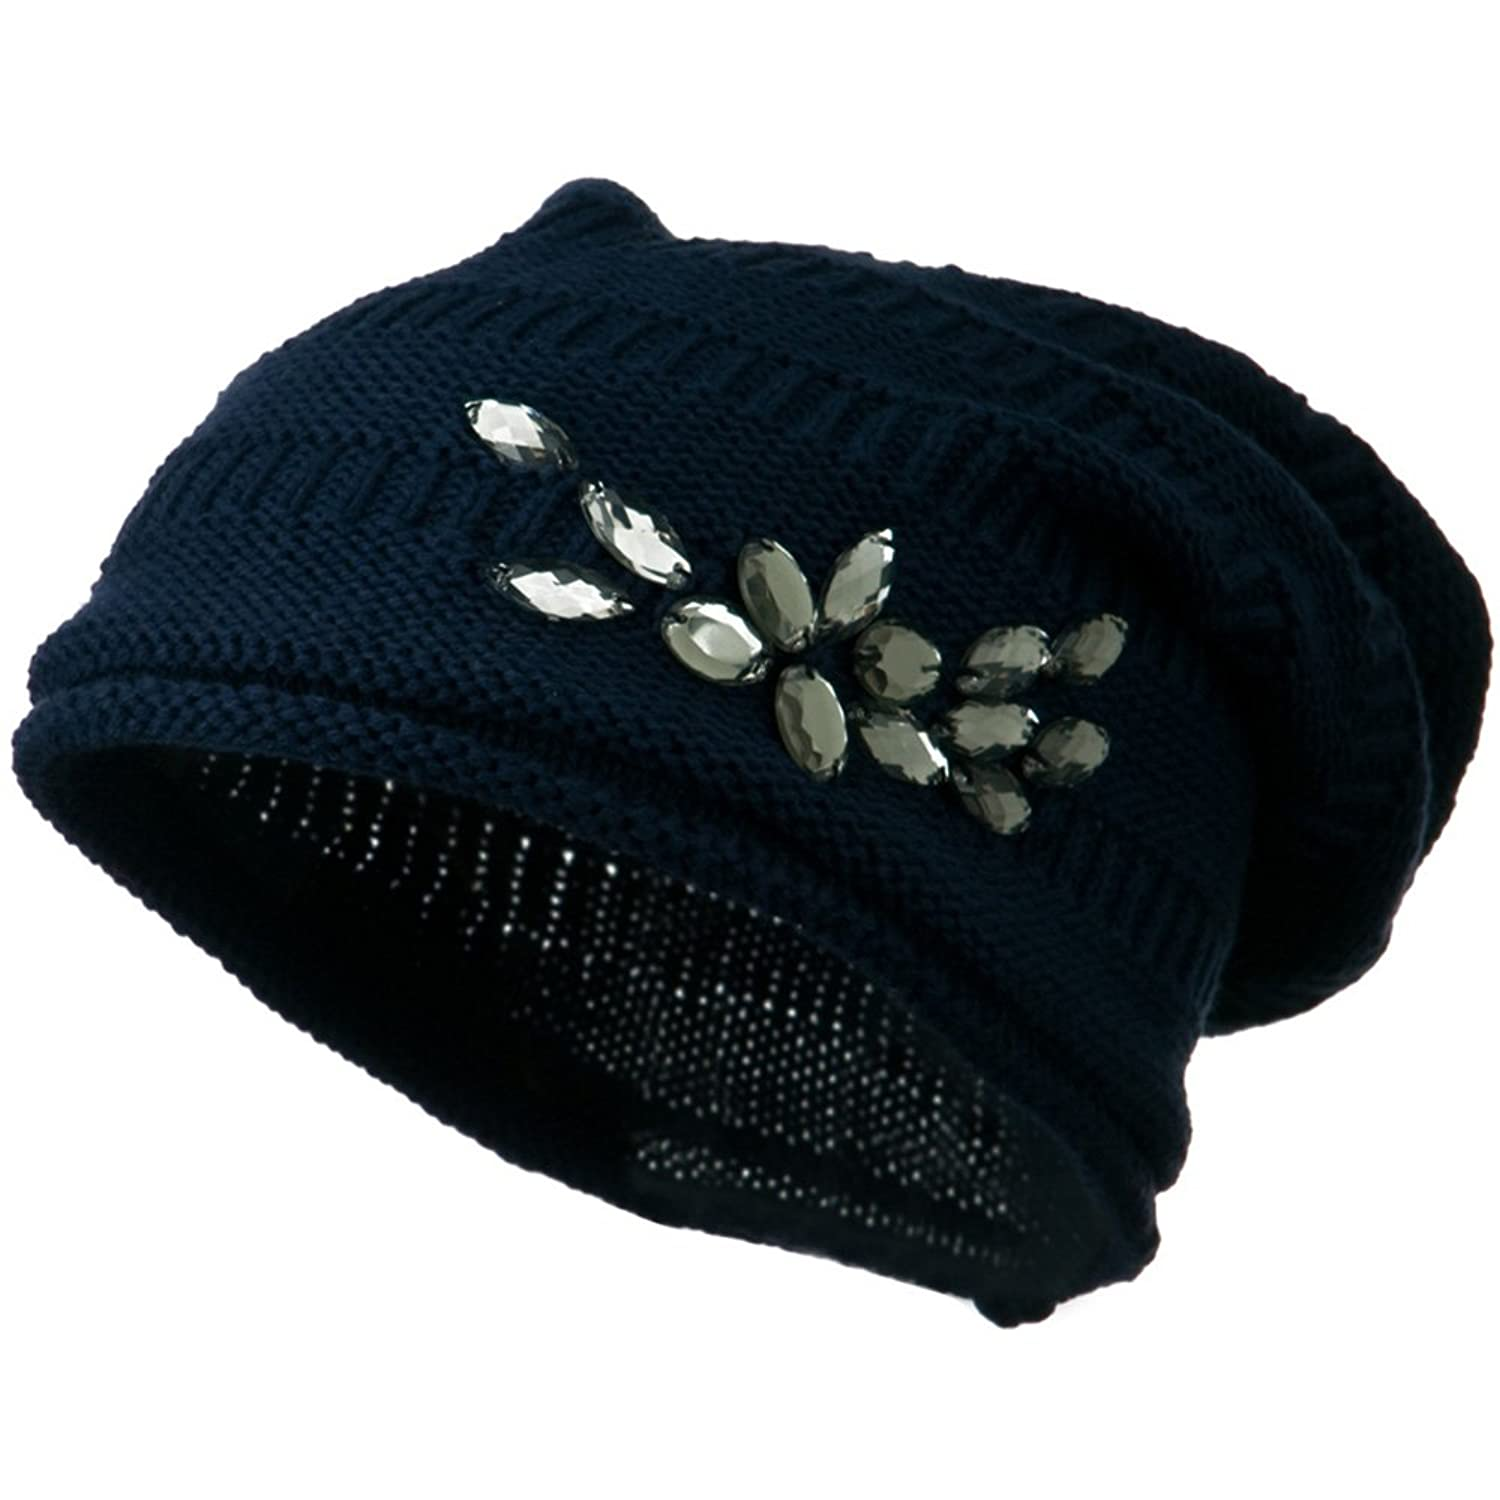 Knit Deep Shell Hat with Rhinestone - Navy W28S23D